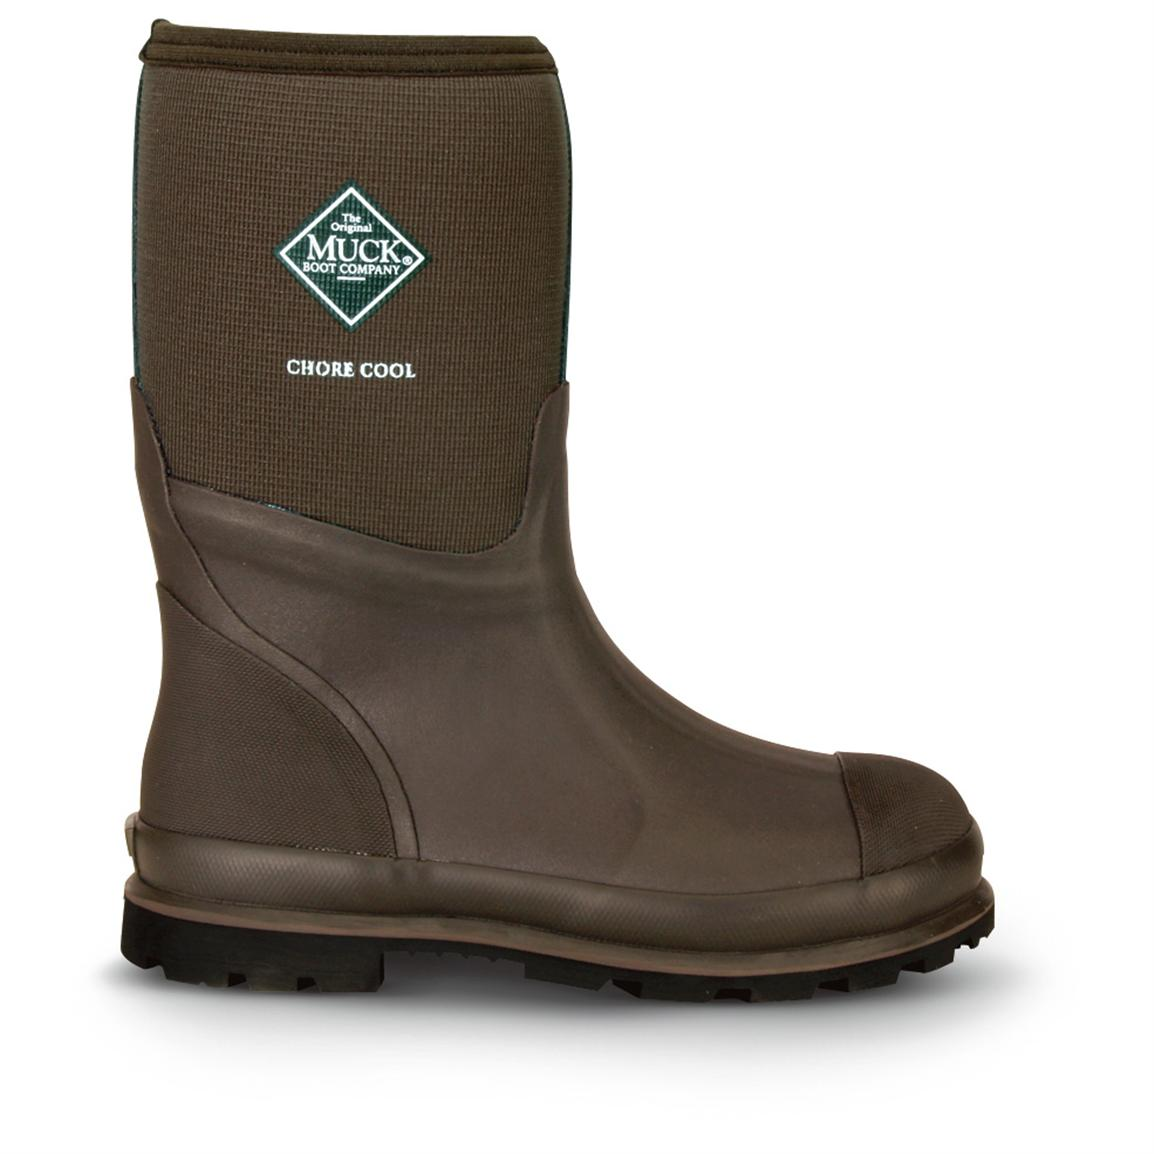 Men&39s Muck Boots™ Chore Cool Waterproof Mid Rubber Boots Brown